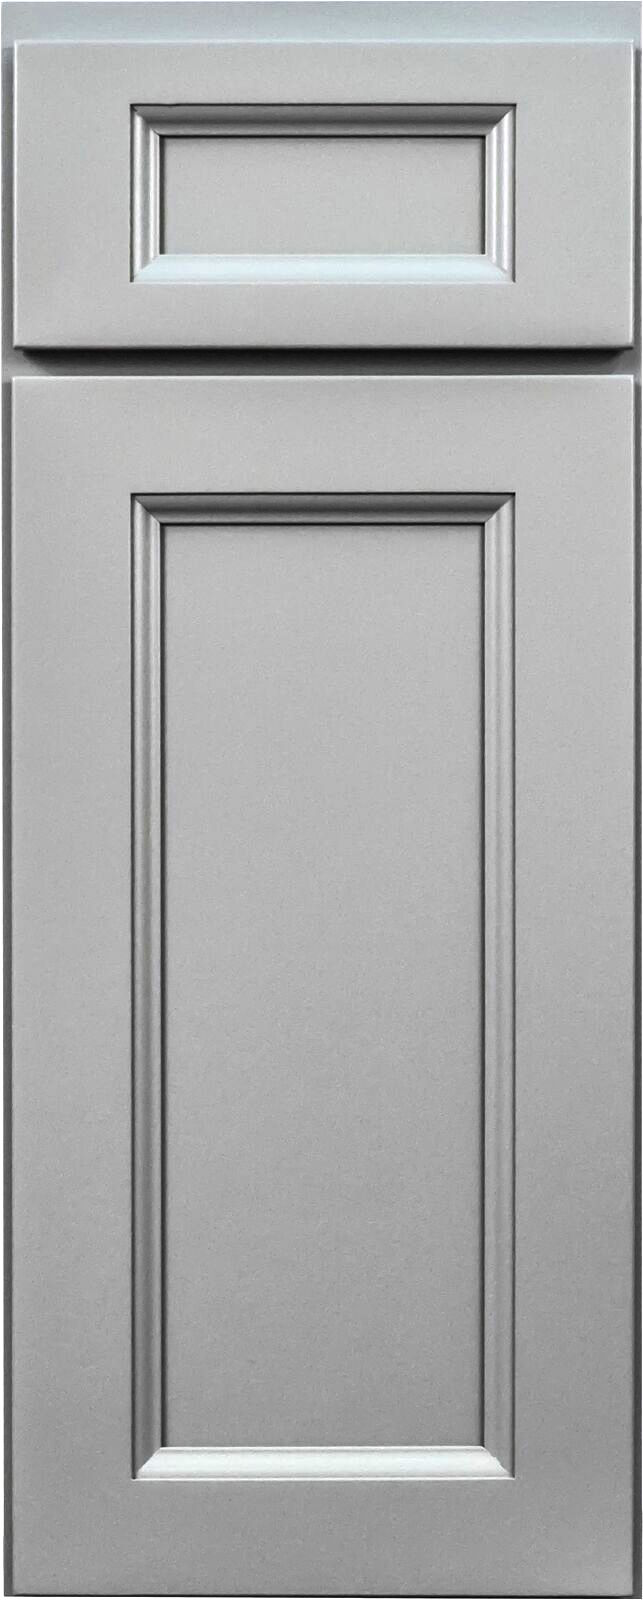 Buy Light Gray Shaker Rta Kitchen Cabinets Online Today